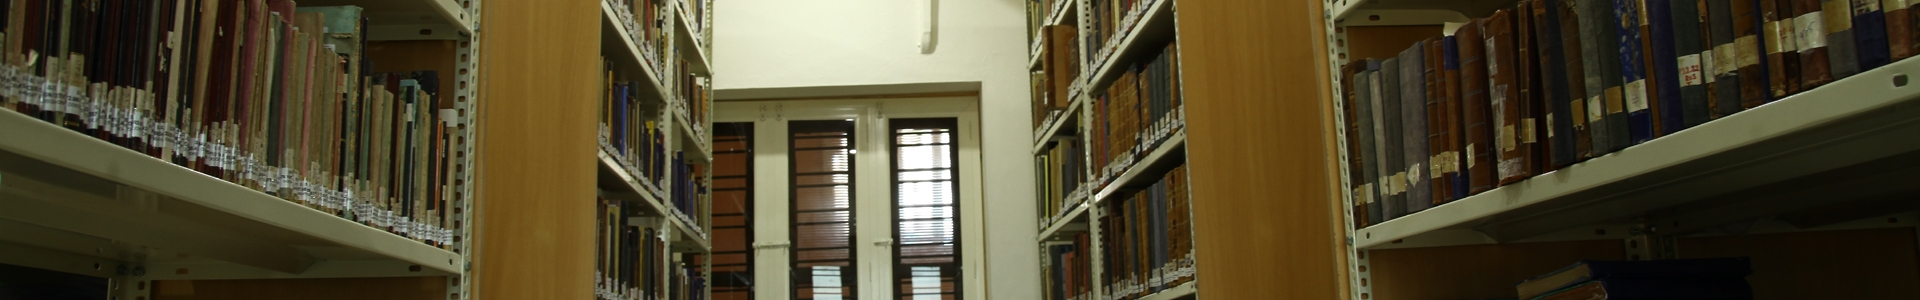 Archival Room